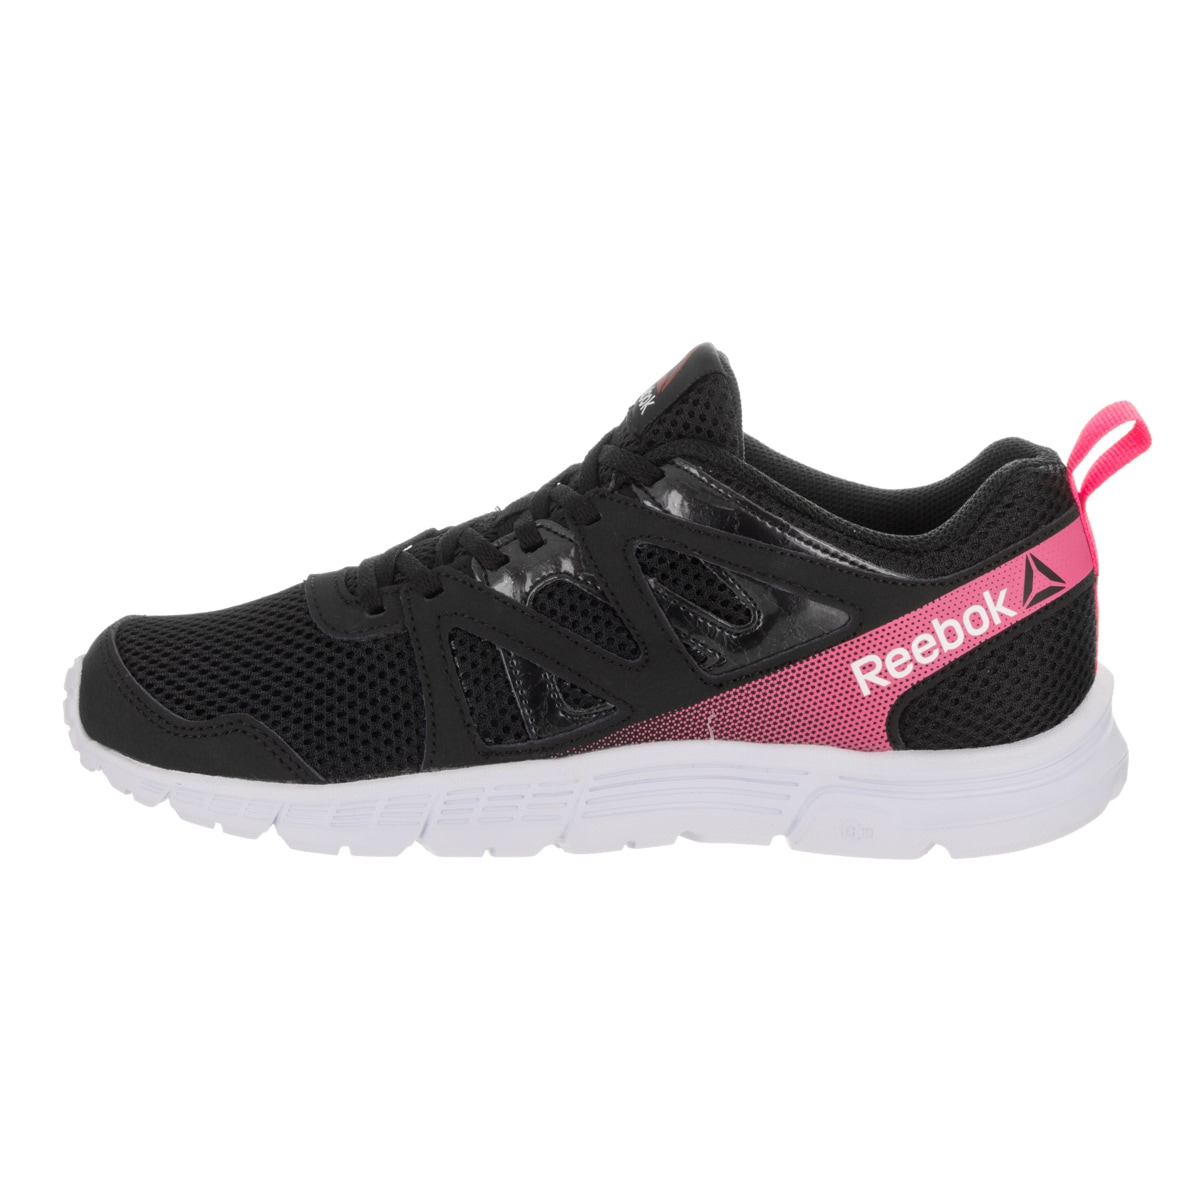 Daftar Harga The Pink Panther 2 A Mixed Bag Of Mayhem 3 Daddy Mojo Atteenahijab Atiqa Raudha Ungu Tua Shop Reebok Womens Run Supreme 20 Wide Running Shoe Free